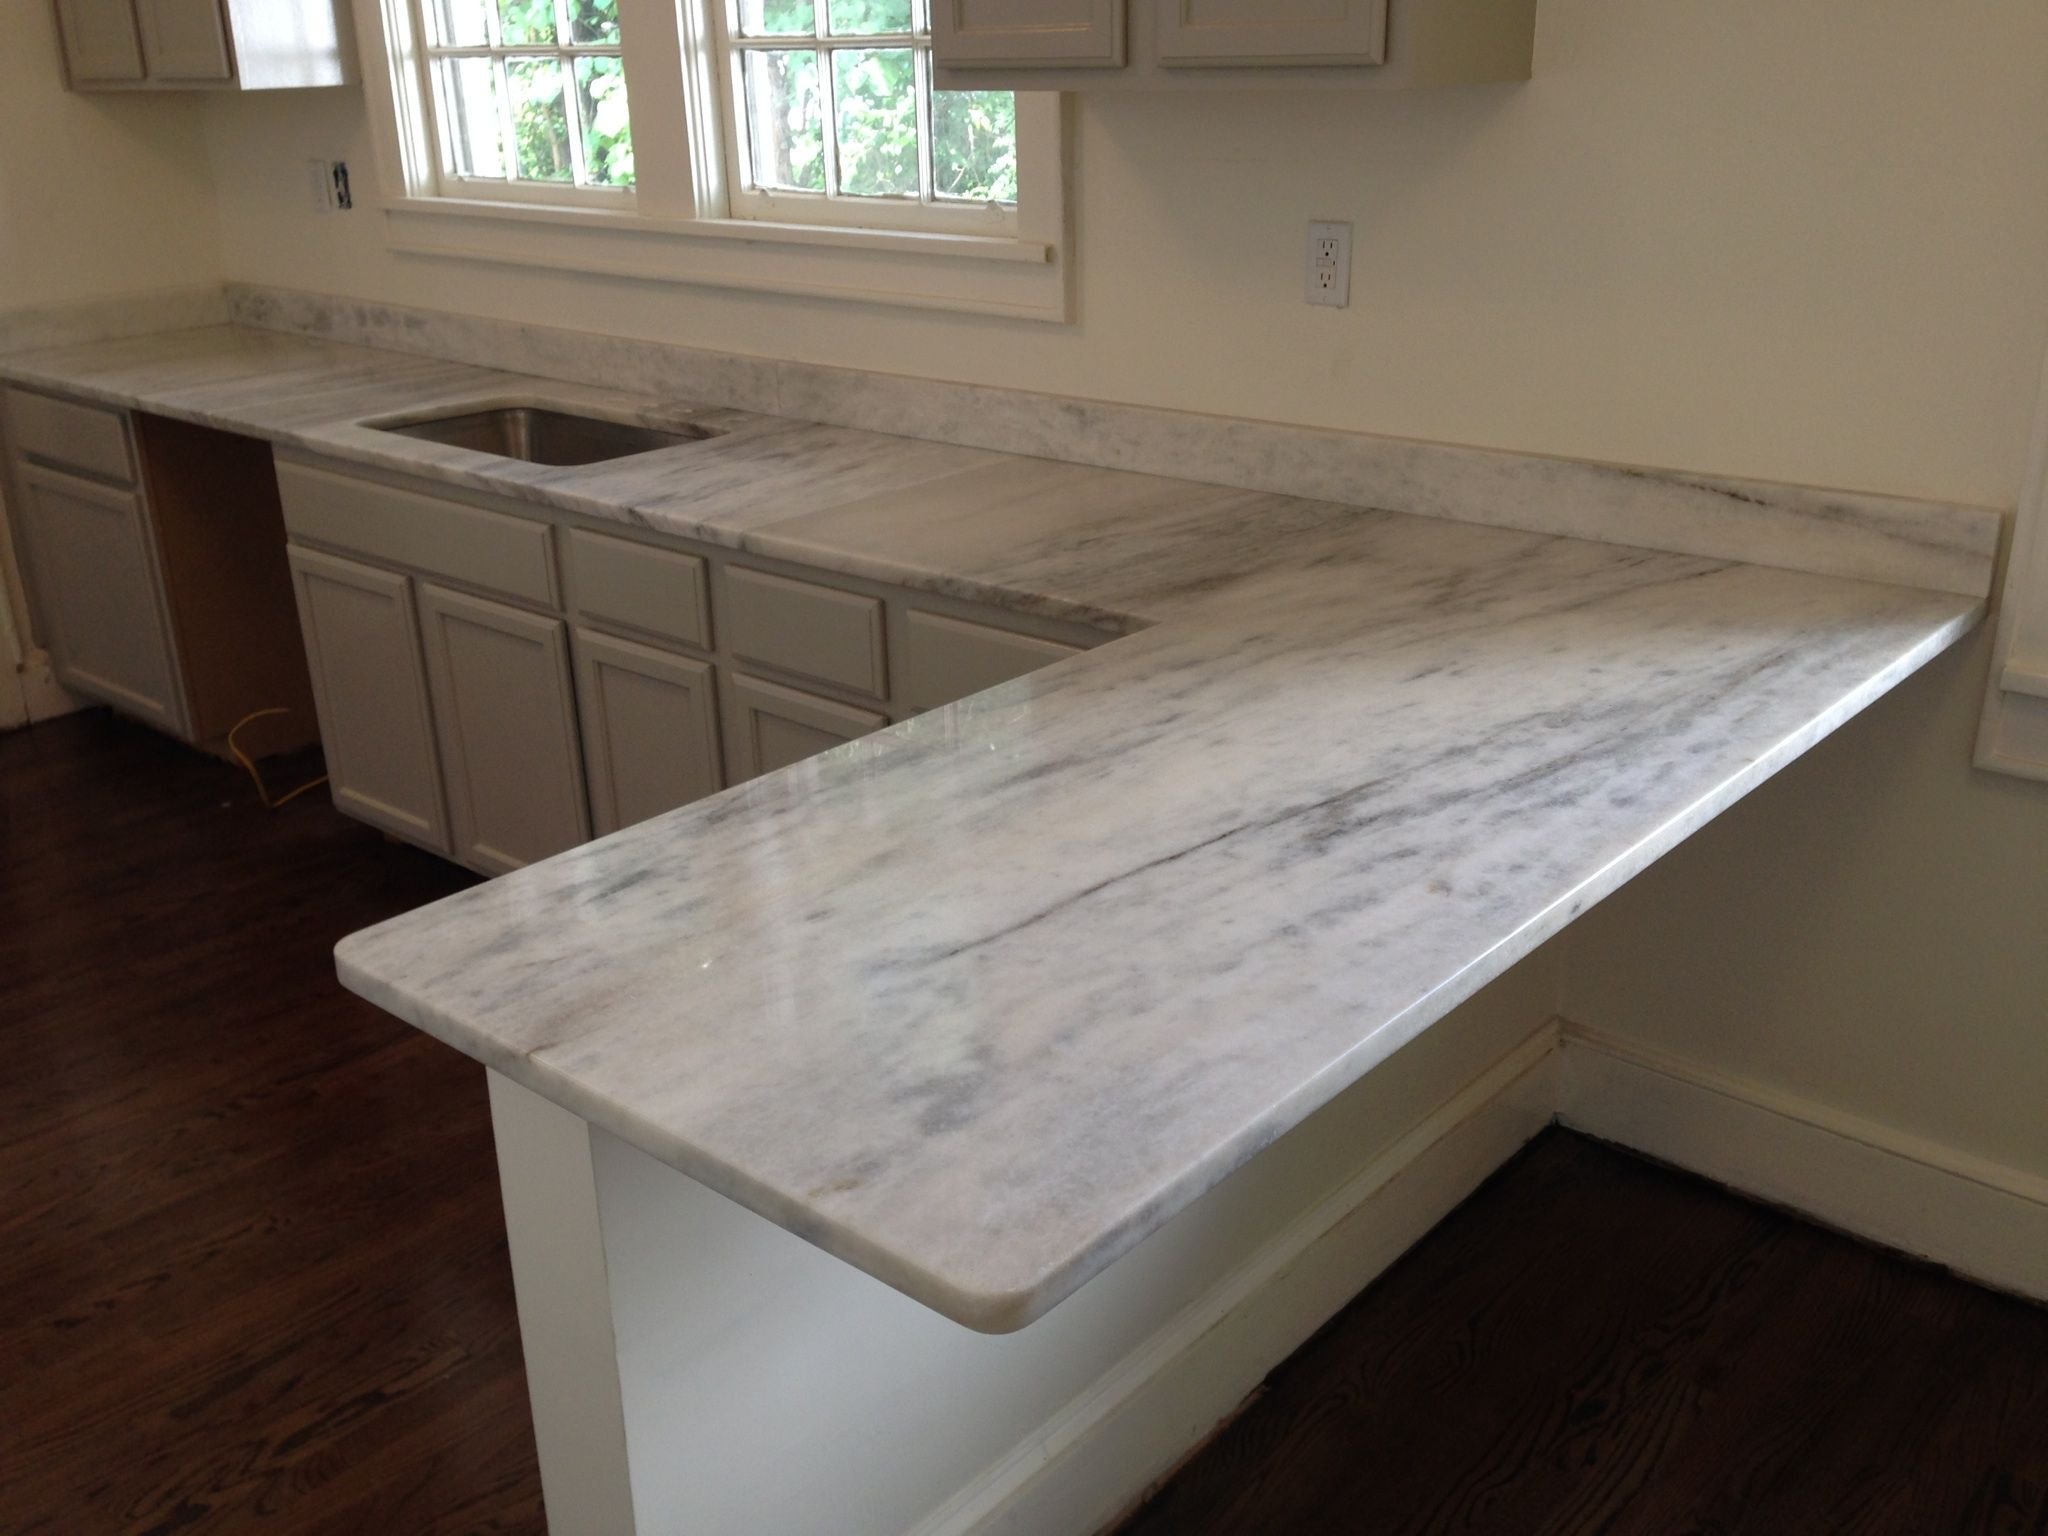 Marble Kitchen Countertops Kitchen Ideas Marble Kitchen Countertops White Marble Similar